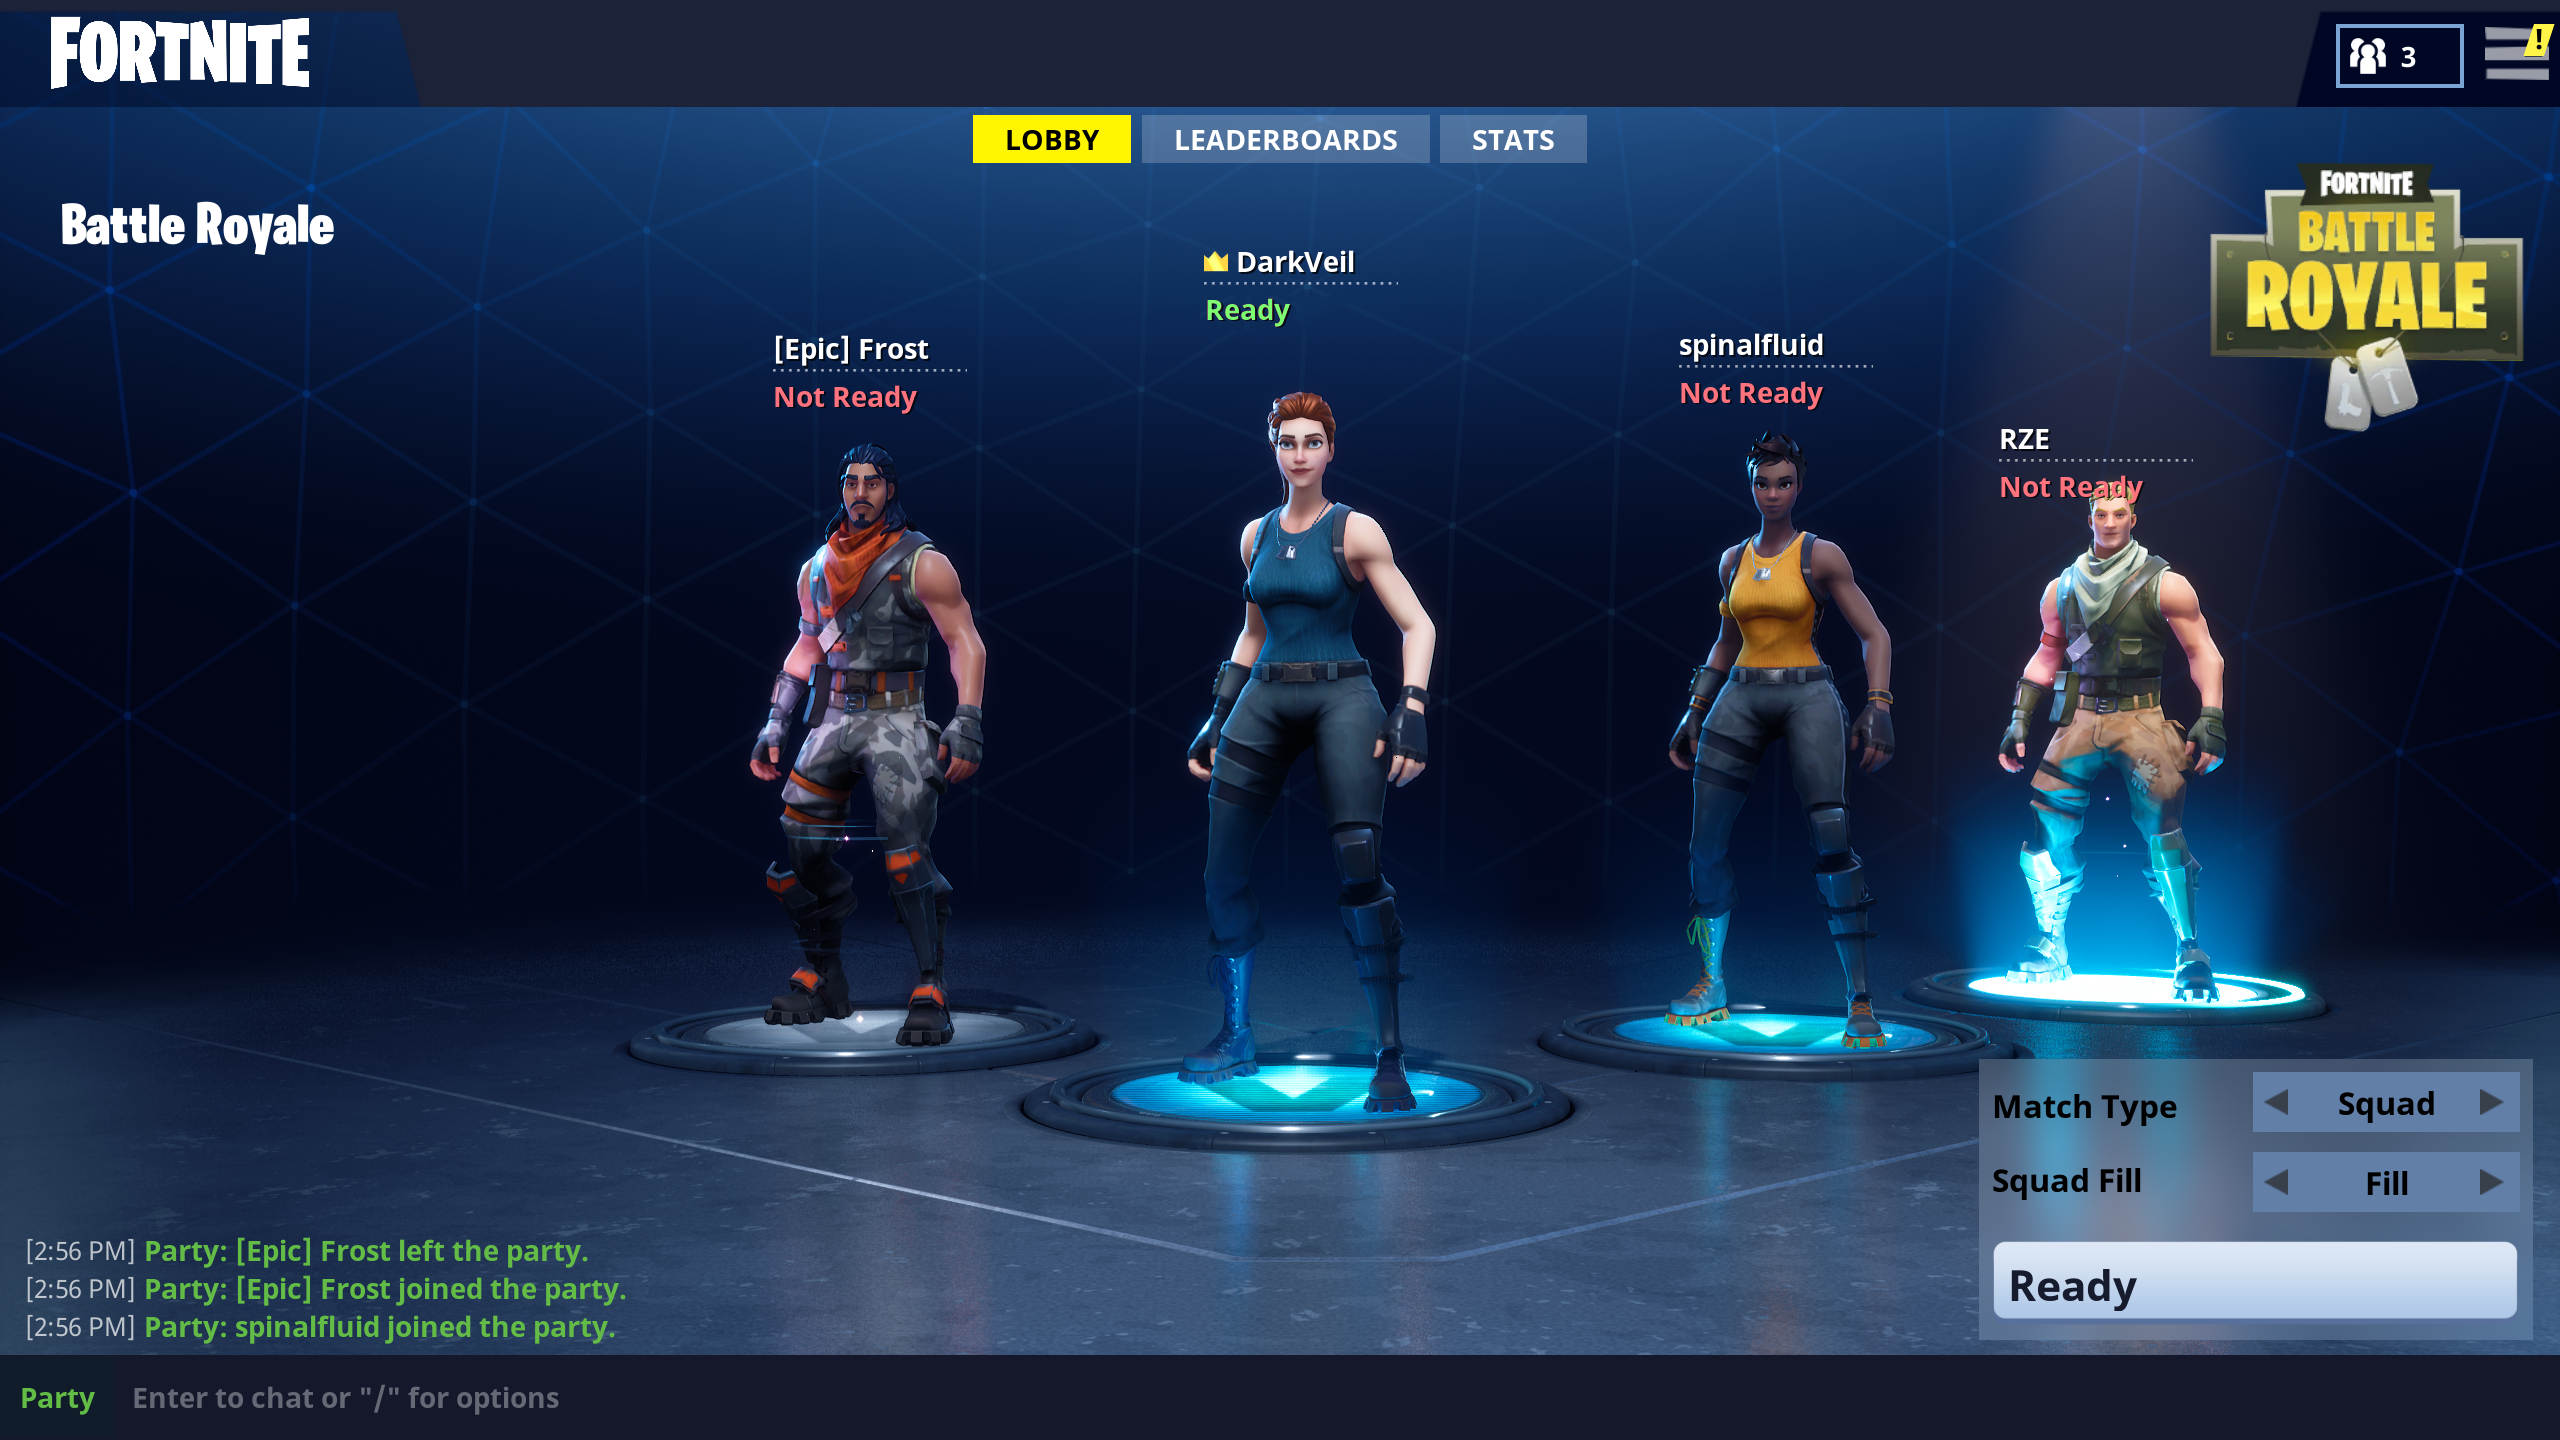 Fortnite%2Fblog%2Fea-1-6-3-release-notes%2Fsquad_08-edit-2560x1440-ee072a74af85ae4beb600d0177ee0419ae71aeae